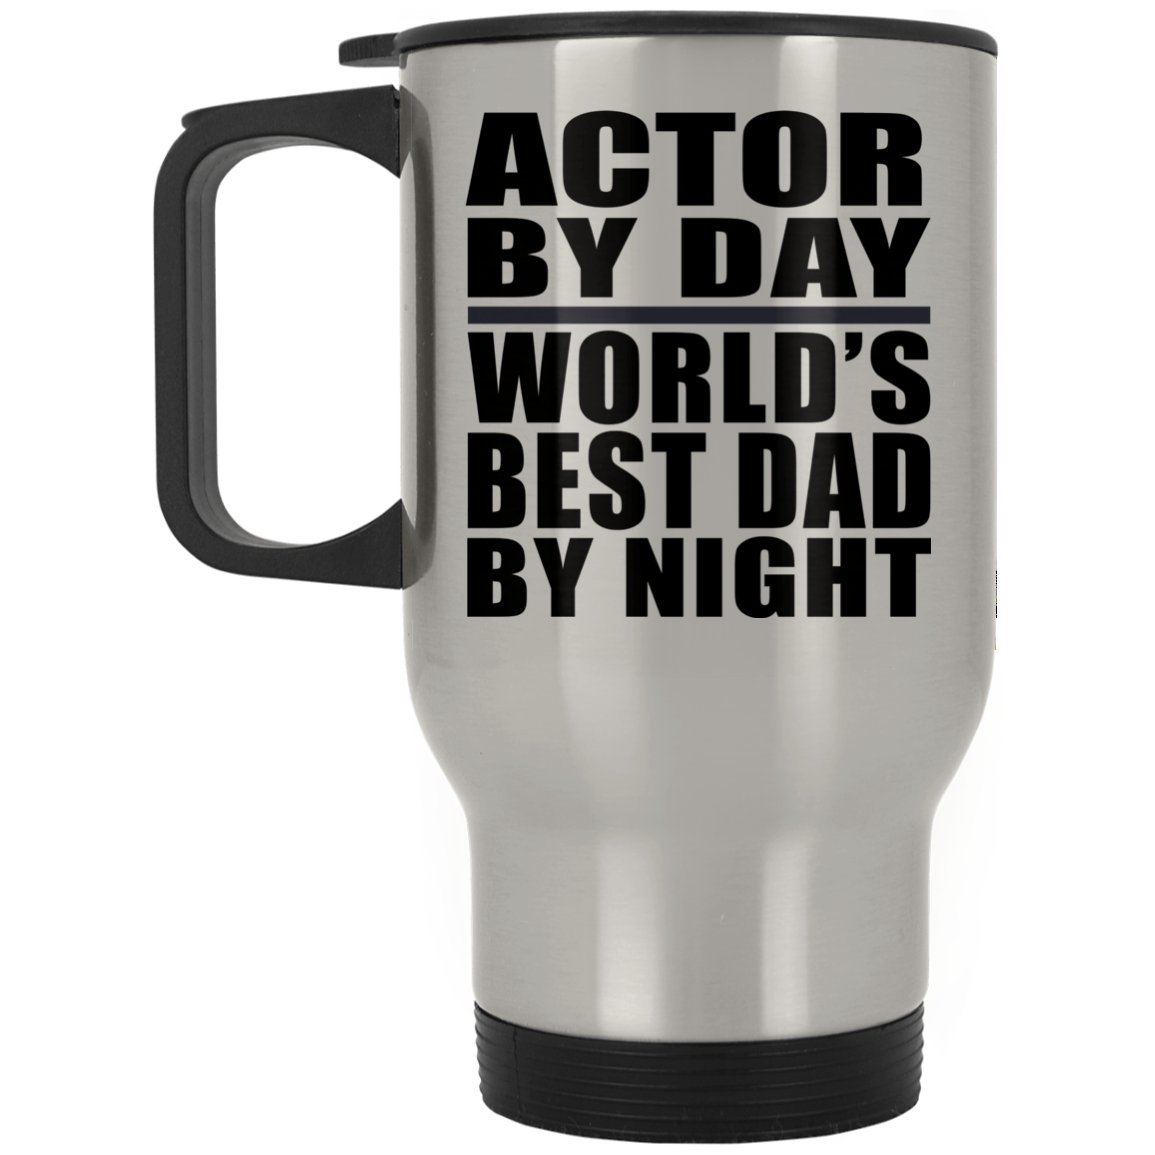 Dad Travel Mug, Actor By Day World's Best Dad By Night - Travel Mug, Stainless Steel Tumbler, Best Gift for Father, Daddy, Him, Parent from Daughter, Son, Kid, Wife by Designsify